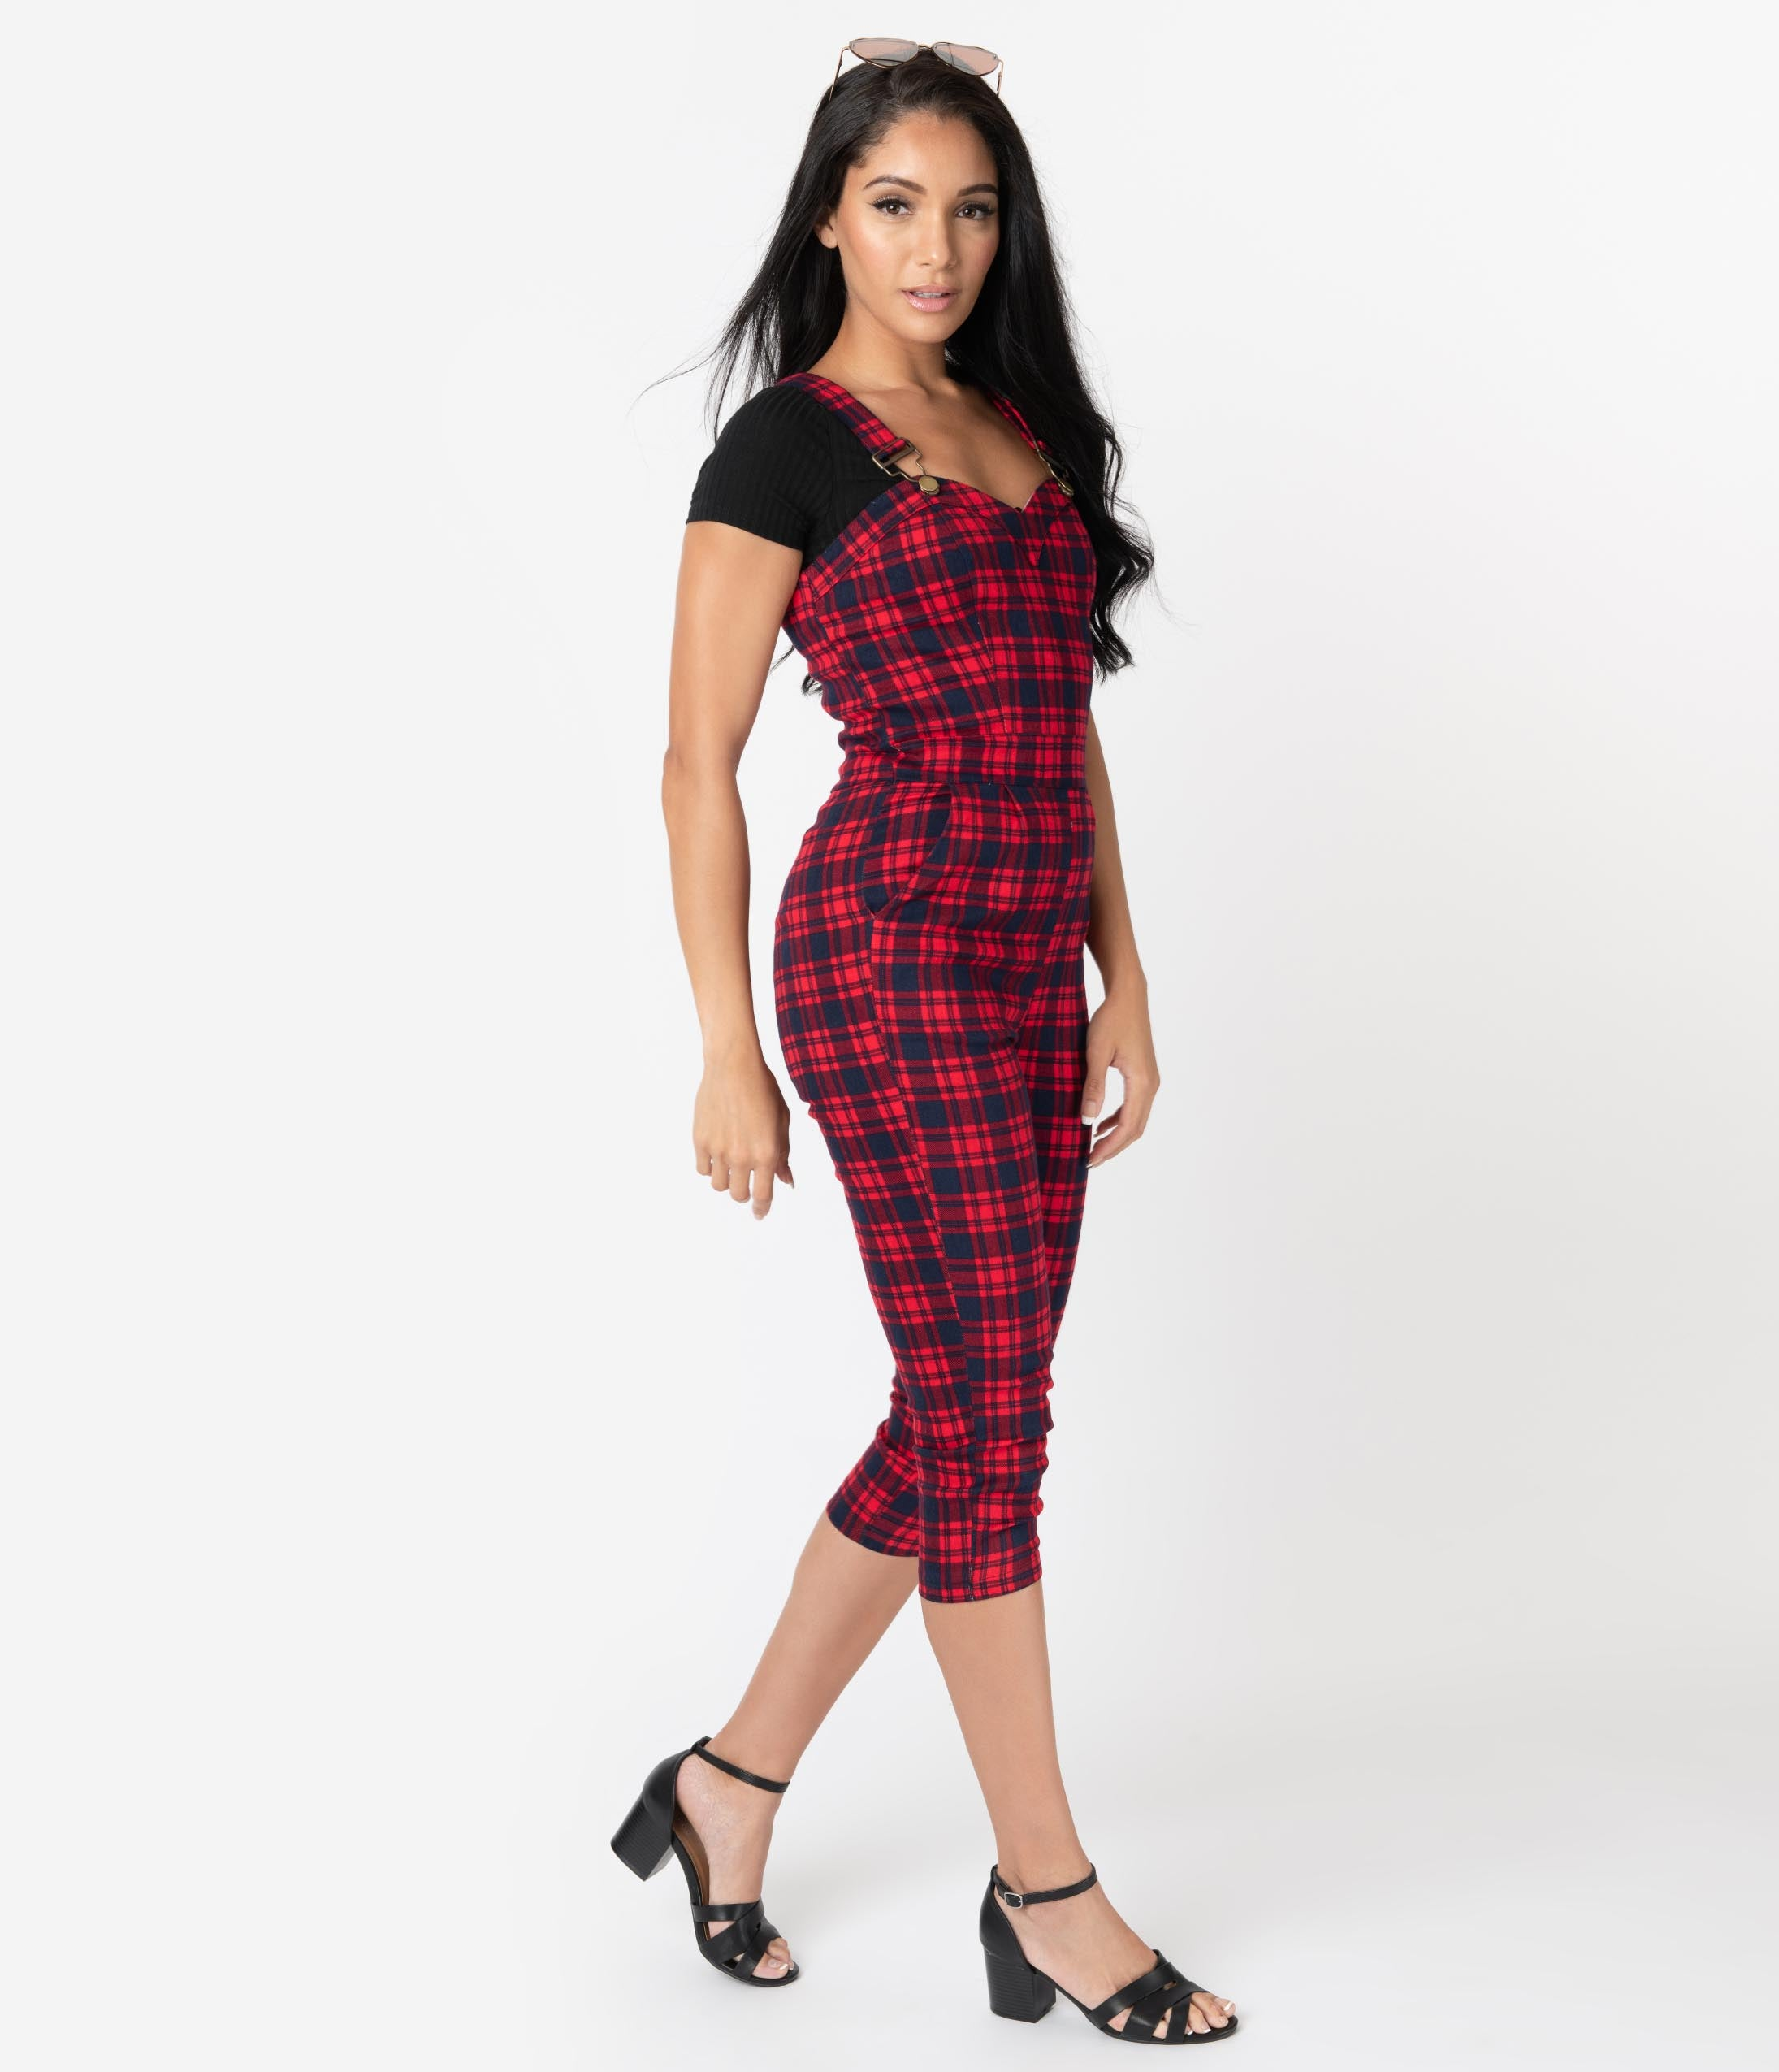 1950s Fashion History: Women's Clothing Retro Style Red  Navy Plaid Cotton Overall Capri Jumpsuit $72.00 AT vintagedancer.com